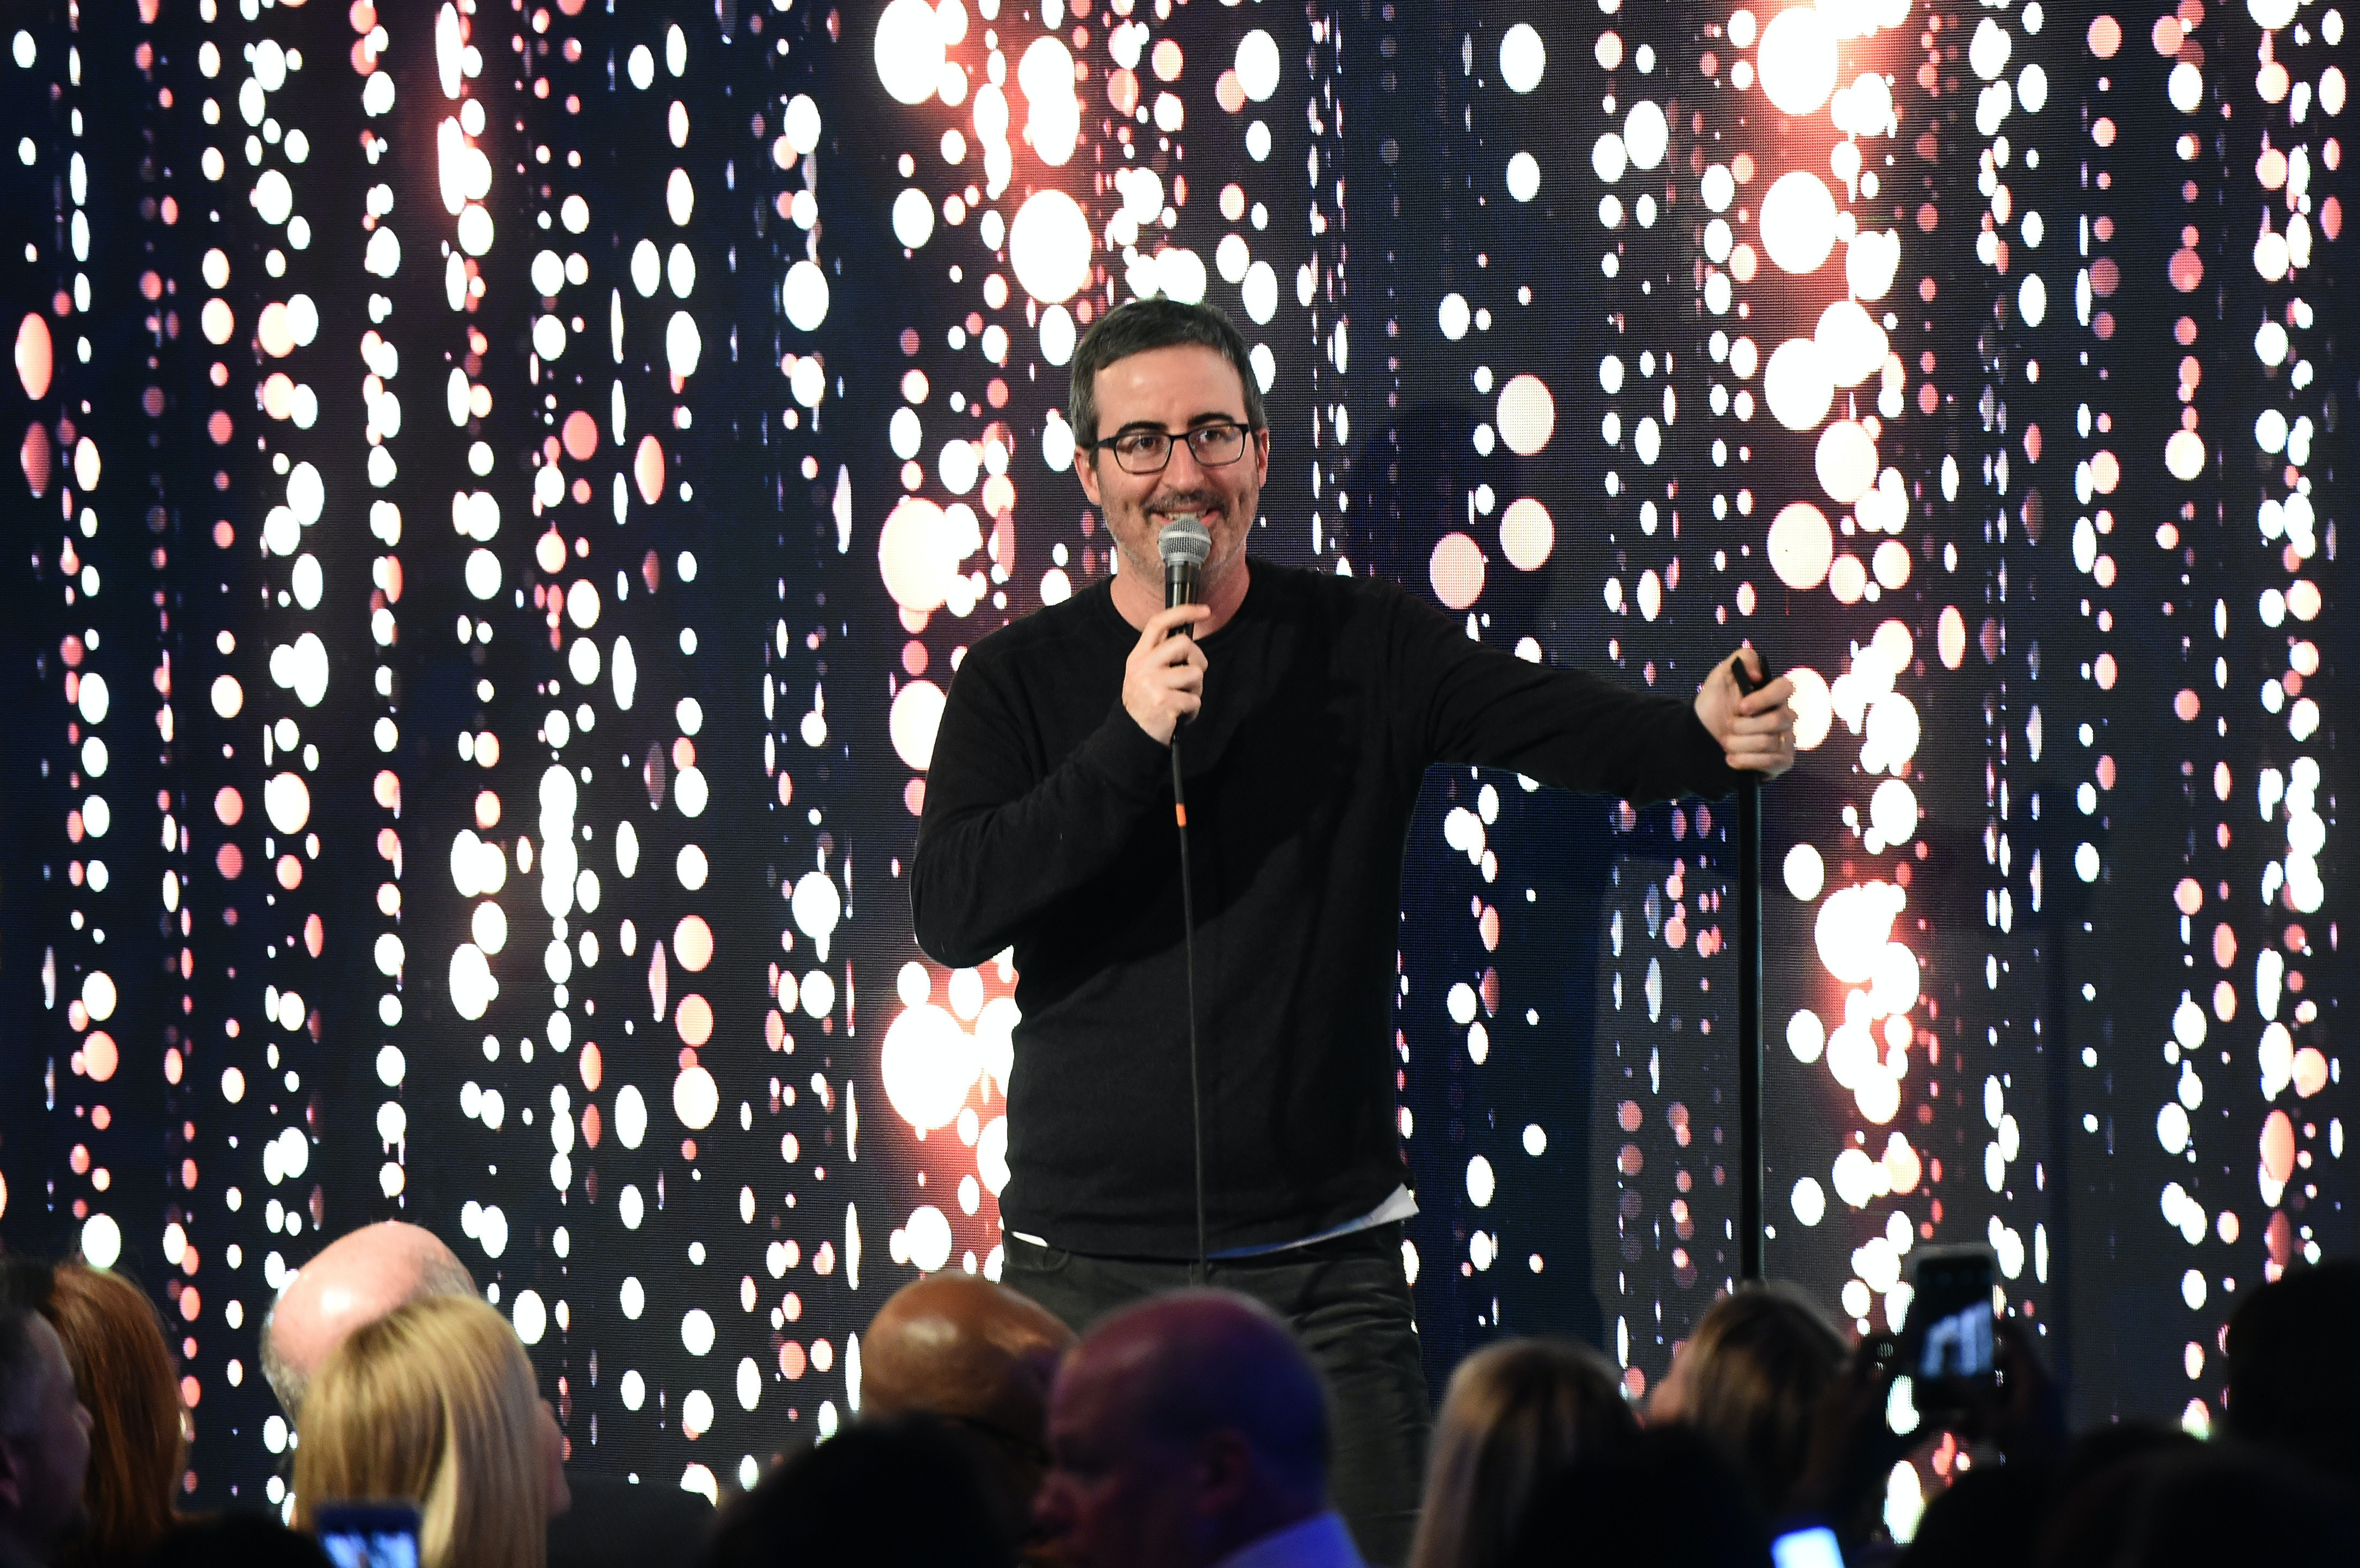 John Oliver New Season 2020 11 John Oliver Episodes To Watch Before 2020 If You Want To Get